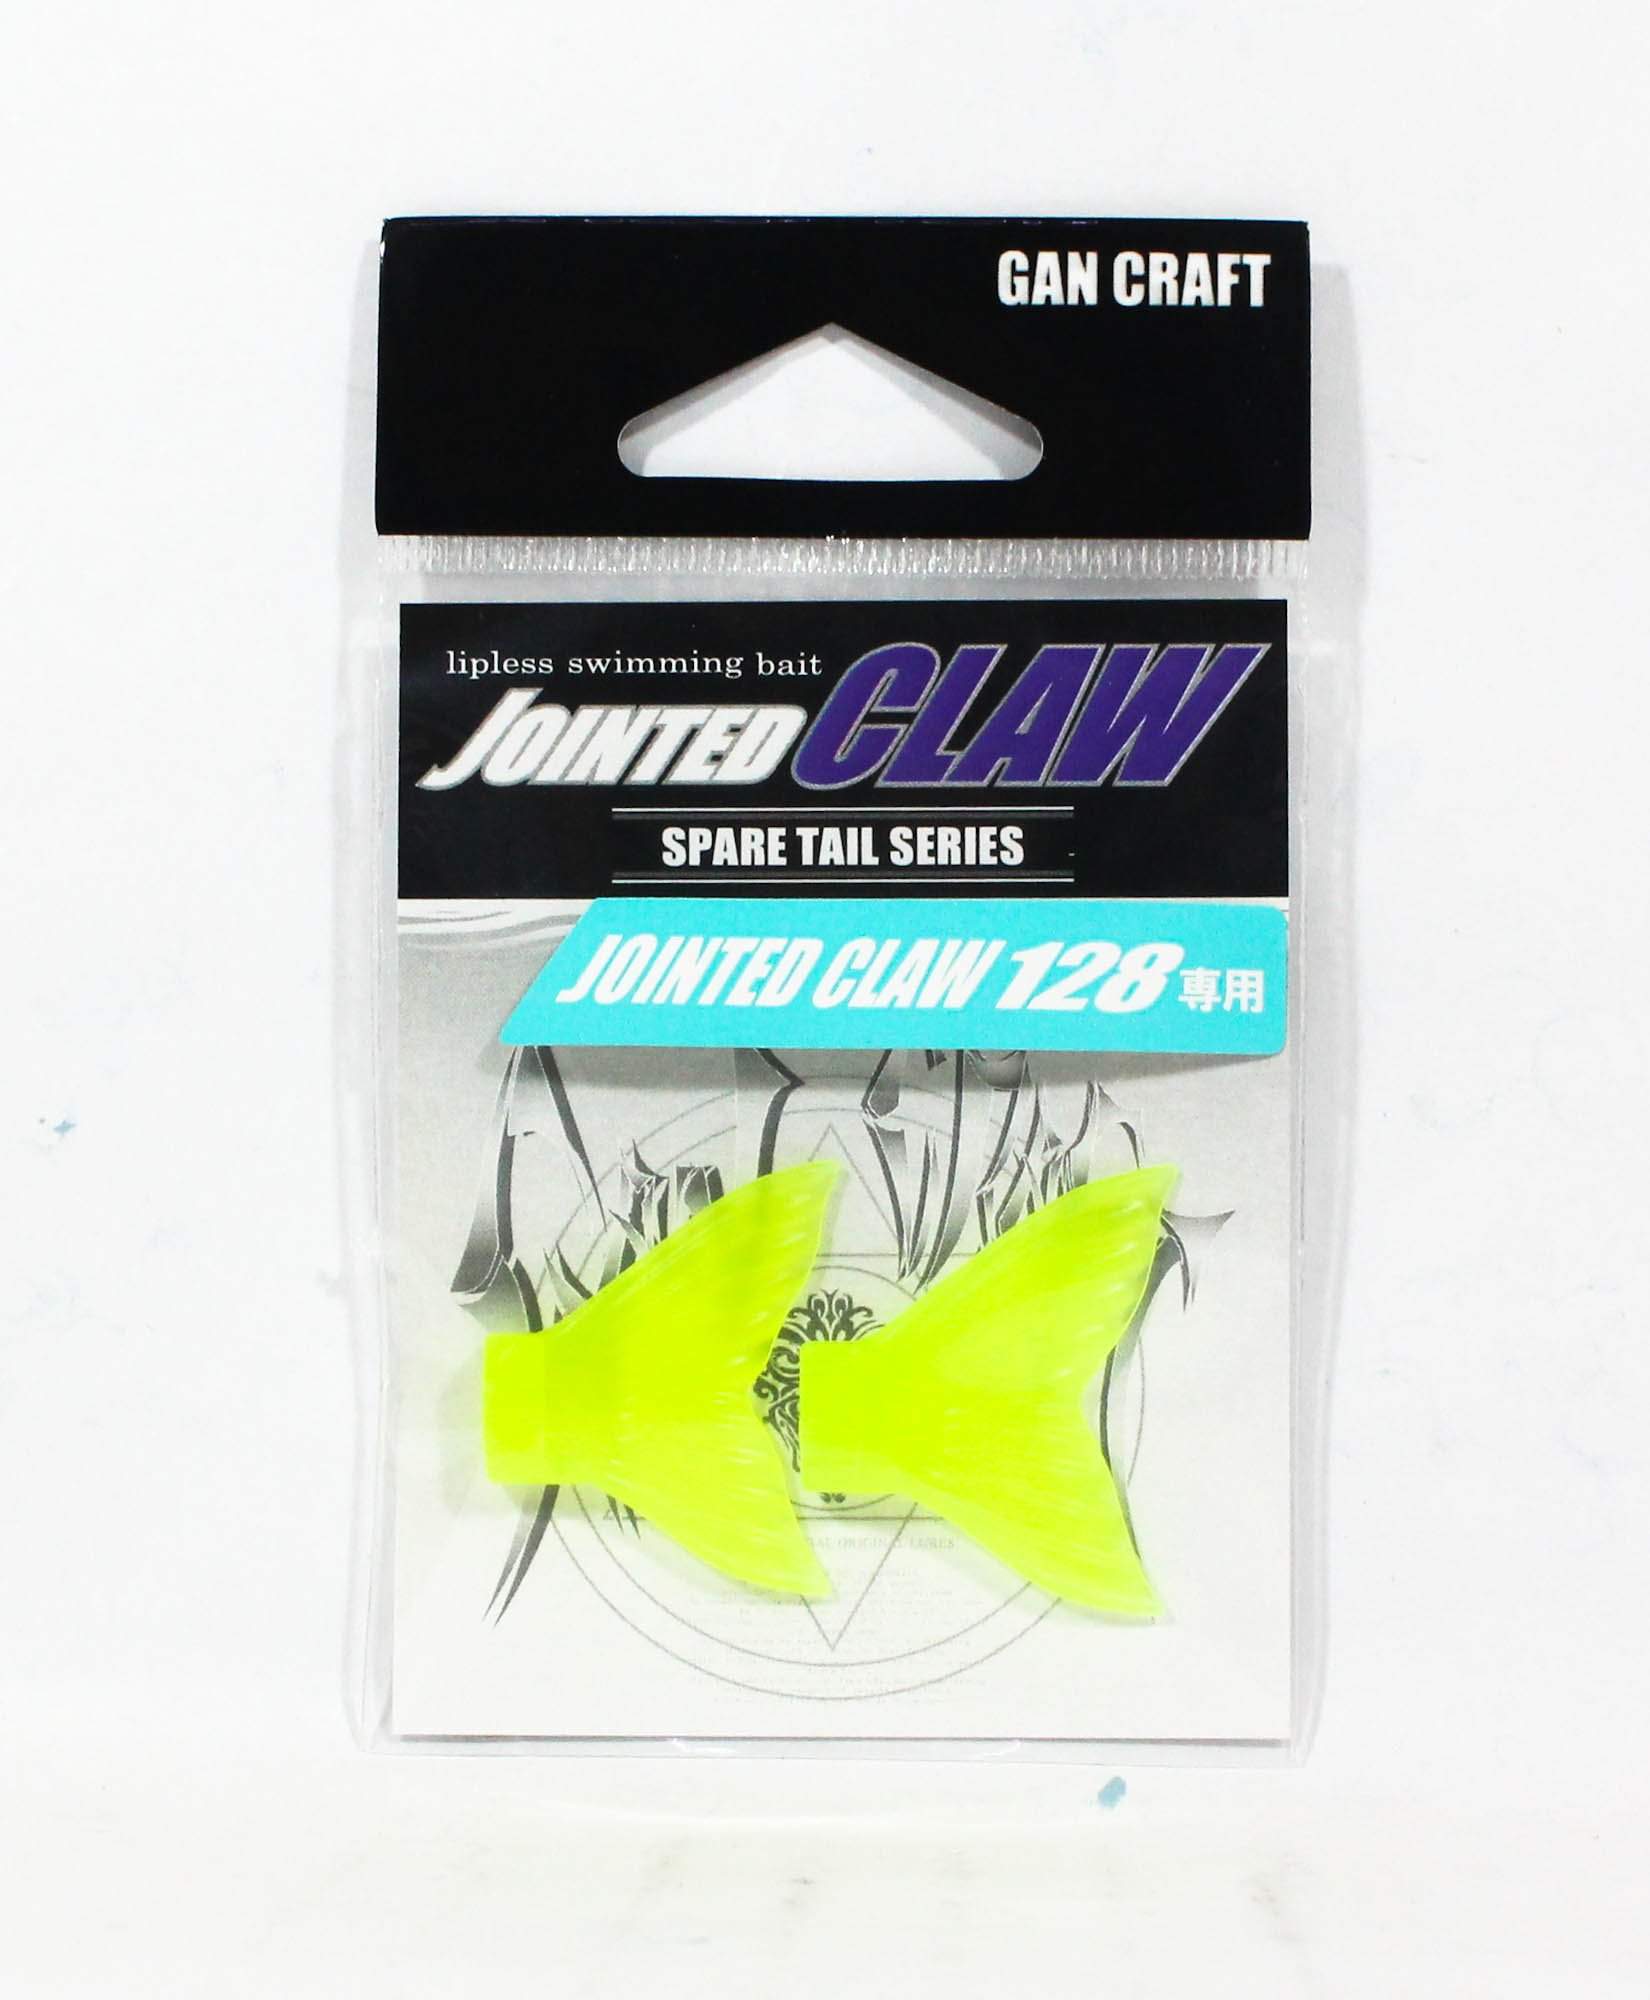 Gan Craft Jointed Claw 128 Spare Tail Normal 04 (1530)